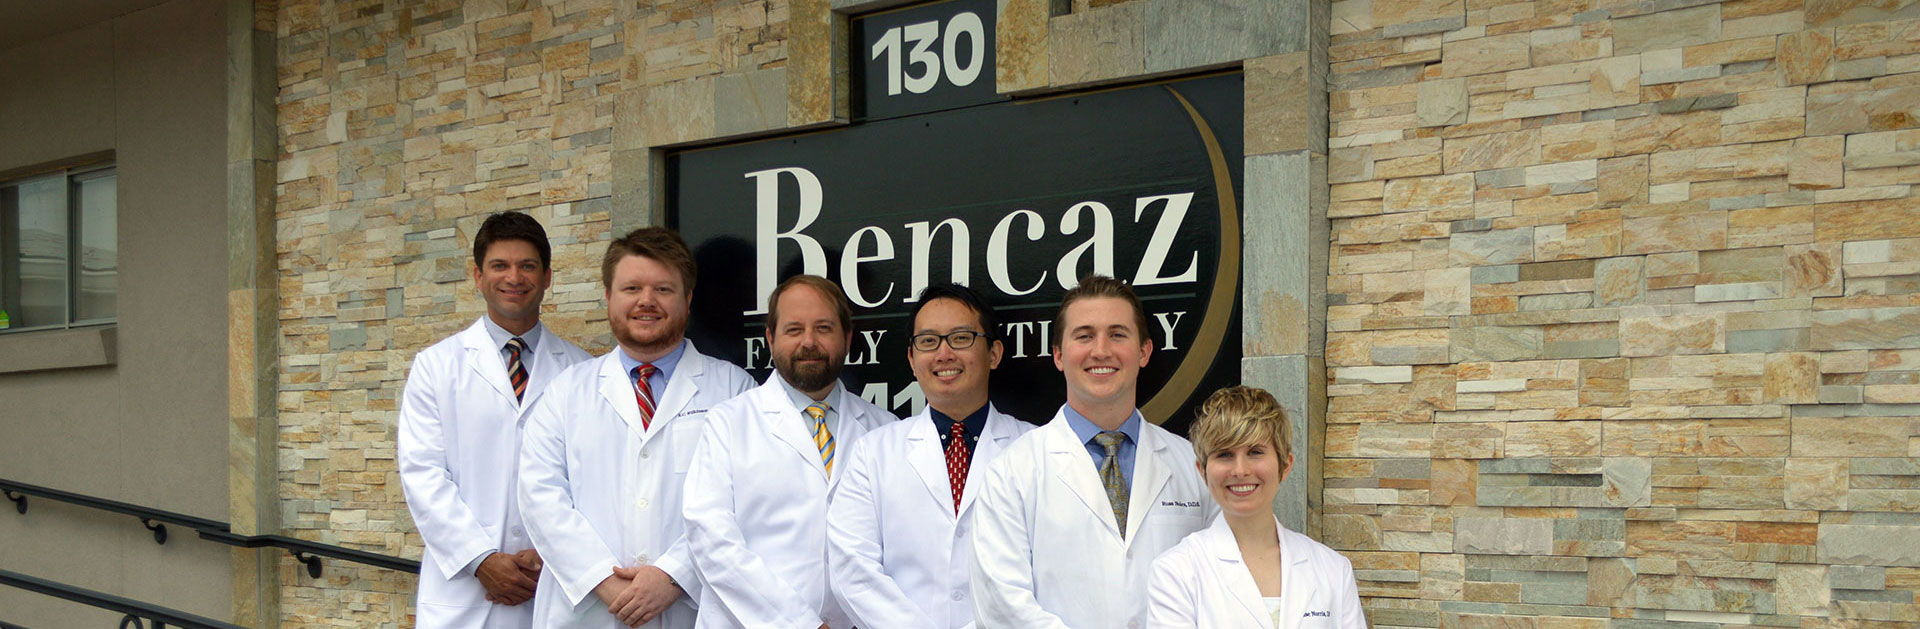 Meet Bencaz Family Dentistry Team Denham Springs, LA